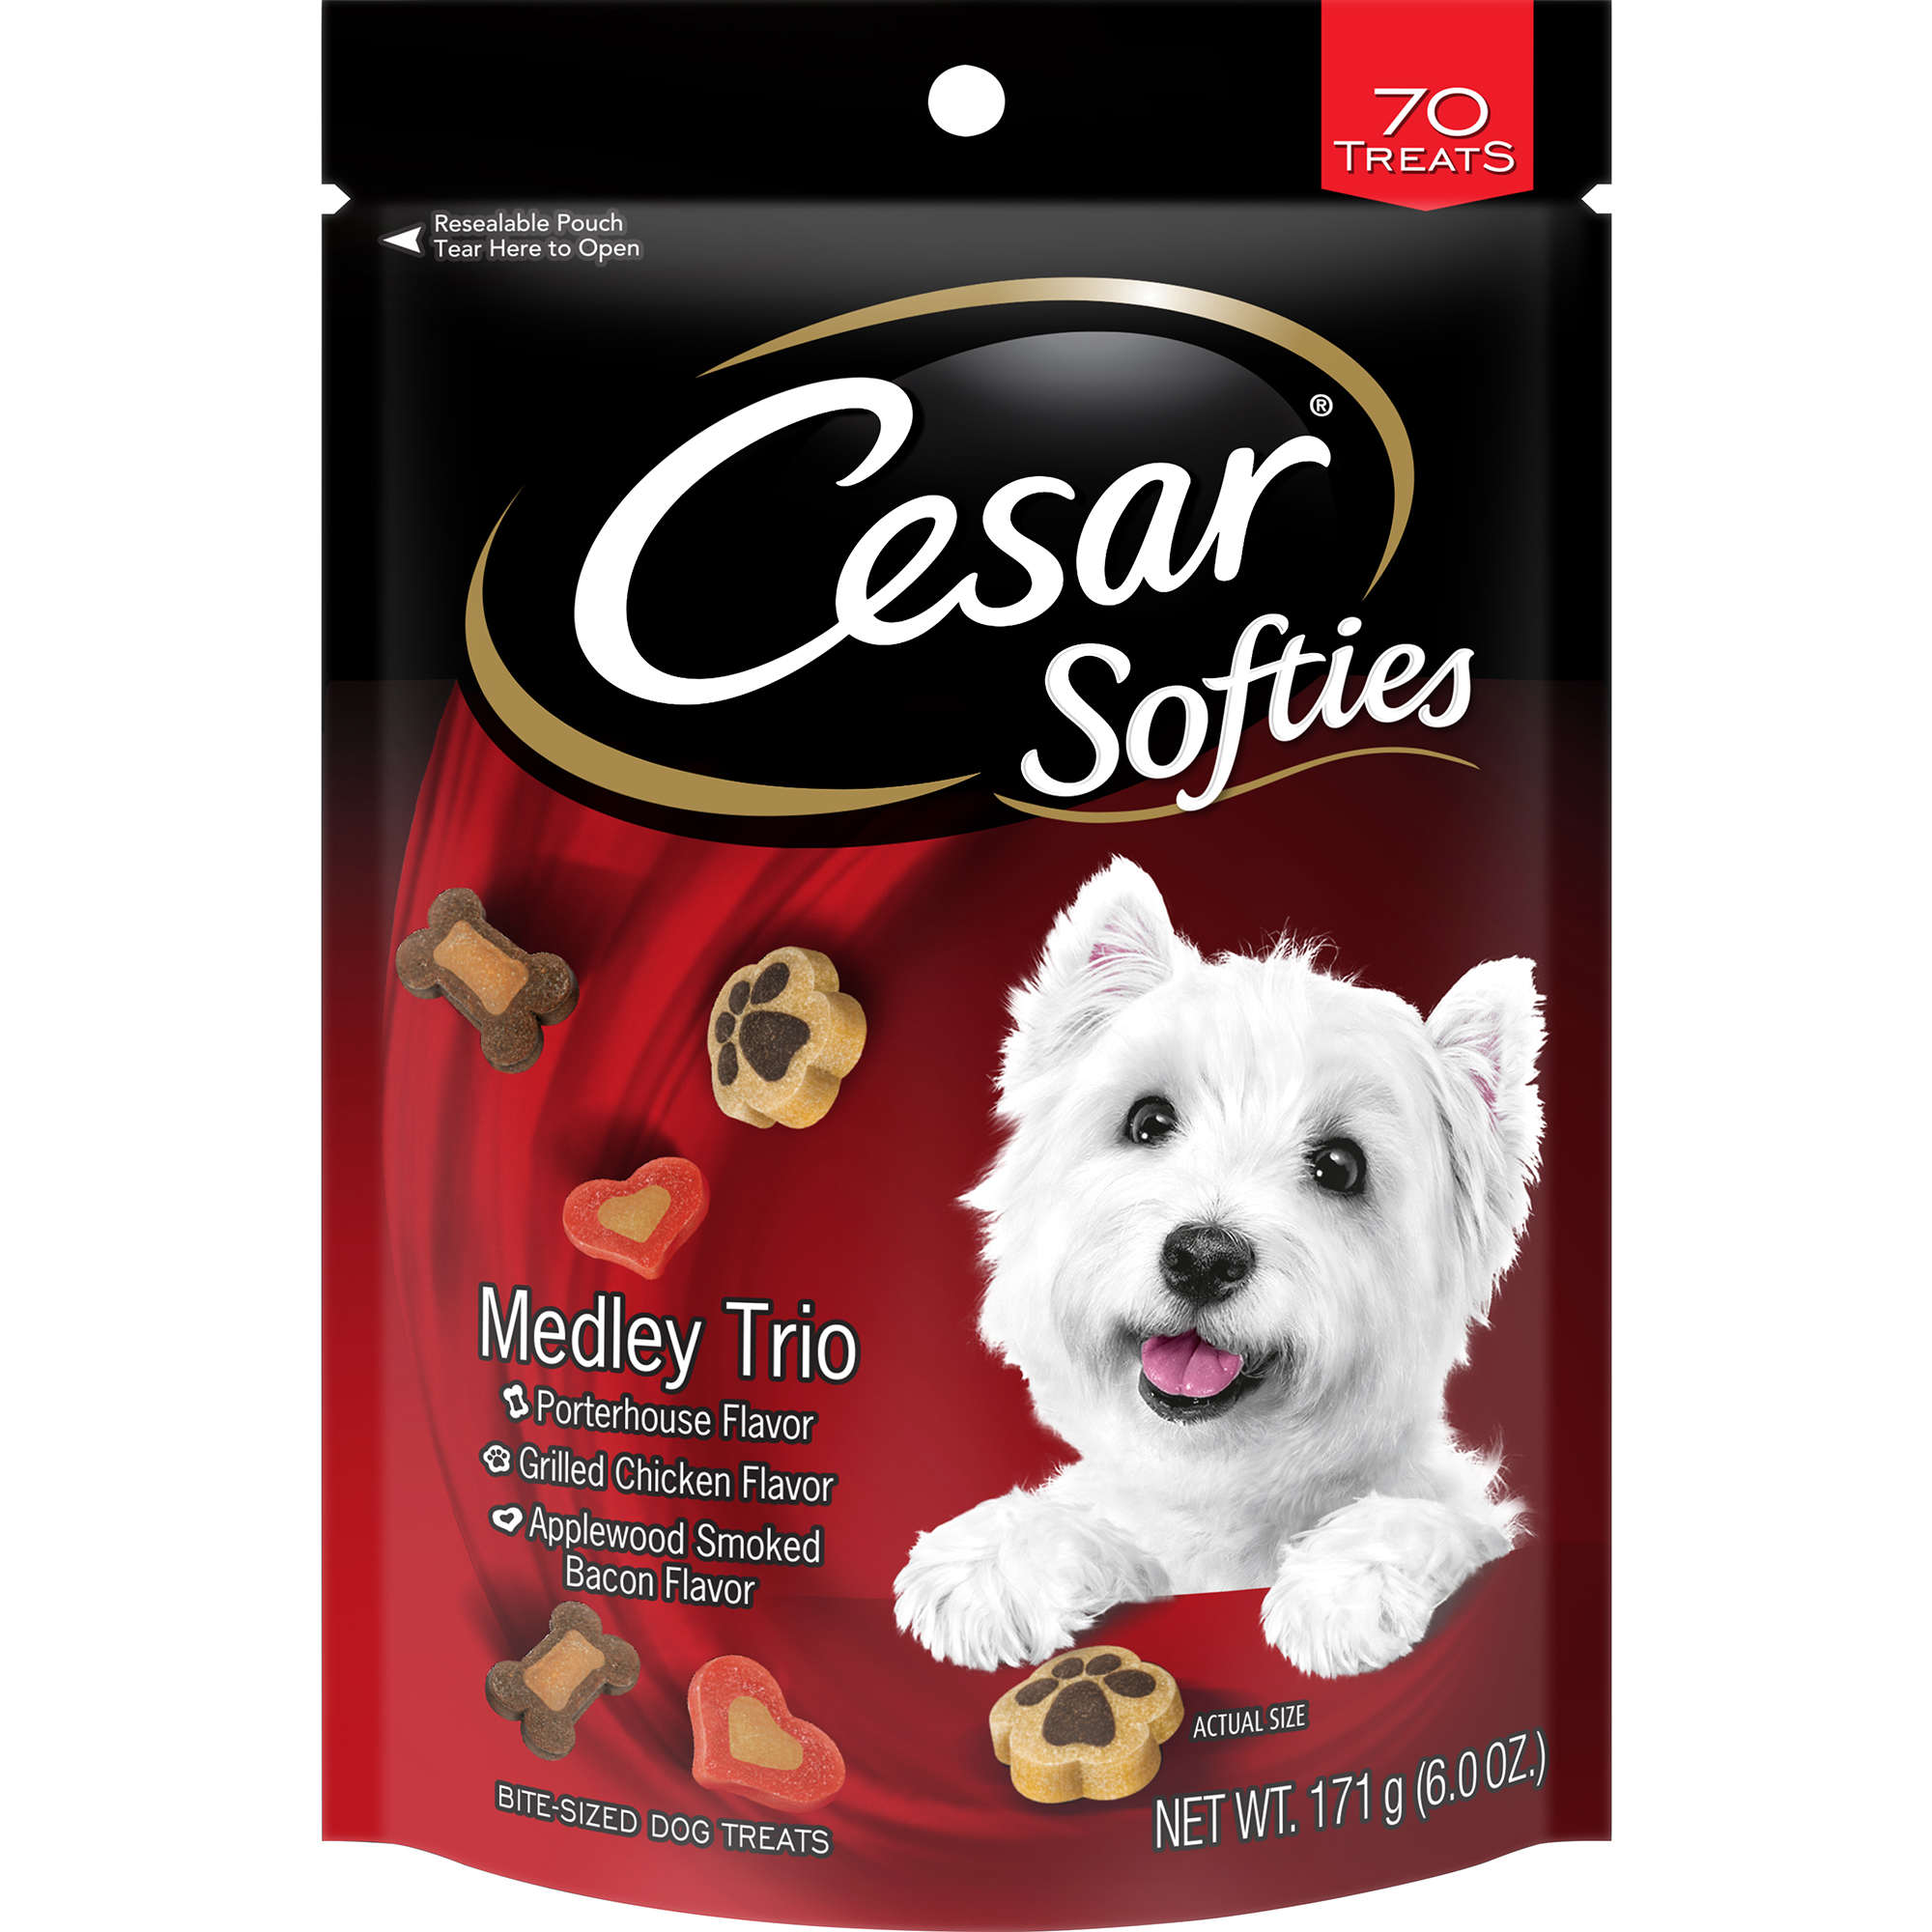 Cesar Softies Medley Trio Bite-Sized Dog Treats, 70 count, 6.0 oz by Mars Petcare